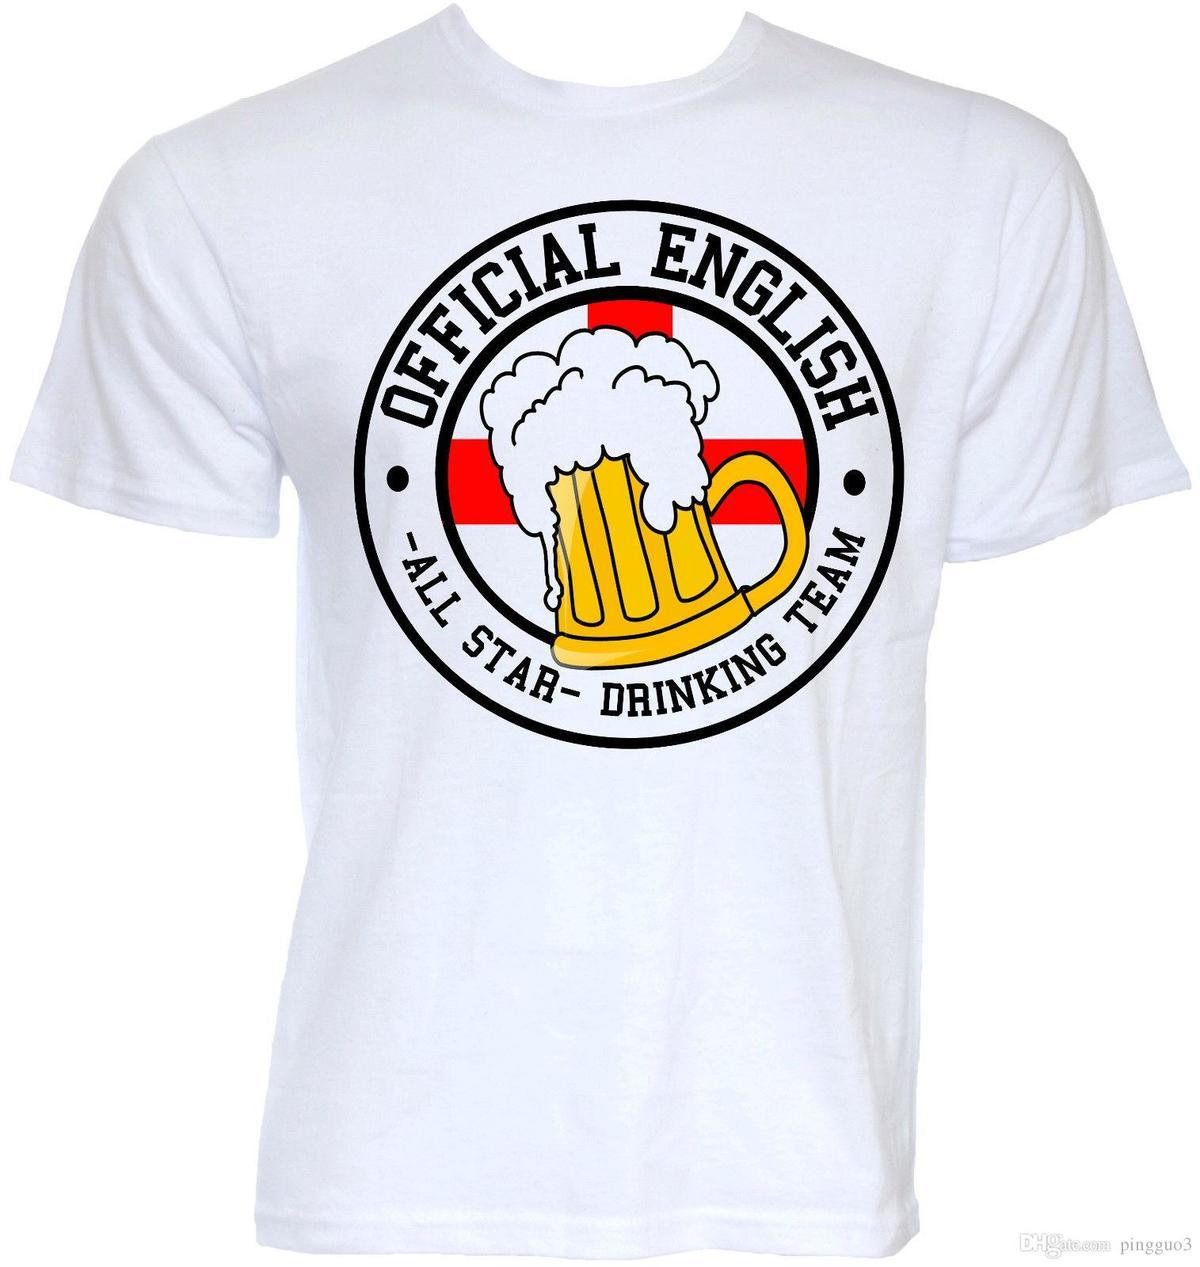 97c7281b MENS FUNNY COOL NOVELTY ENGLISH ENGLAND BEER FLAG JOKE SLOGAN T SHIRTS PUB  GIFTS Short Sleeve Cheap Sale Cotton T Shirt Cool Funny Shirts One Day  Shirts ...